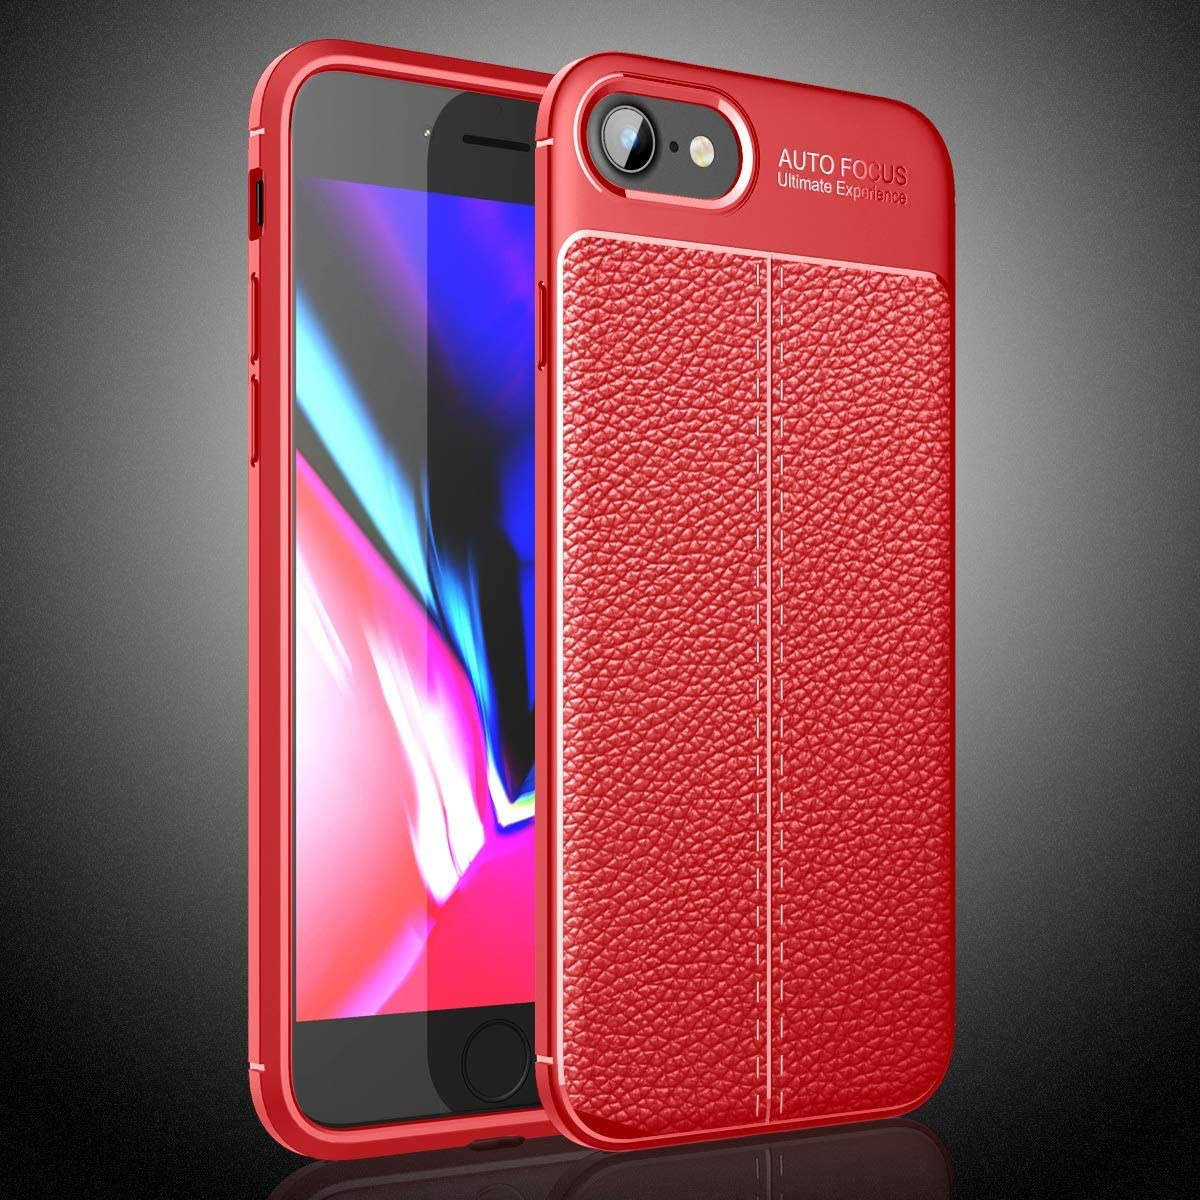 Smartphone Protective Clips For iPhone SE Case(Nonporous), for iPhone 7 Case, for iPhone 8 Case,Shockproof High Impact Tough Rubber Rugged Hybrid Case Protective Anti-Shock Shatter-Resistant Mobile Ph